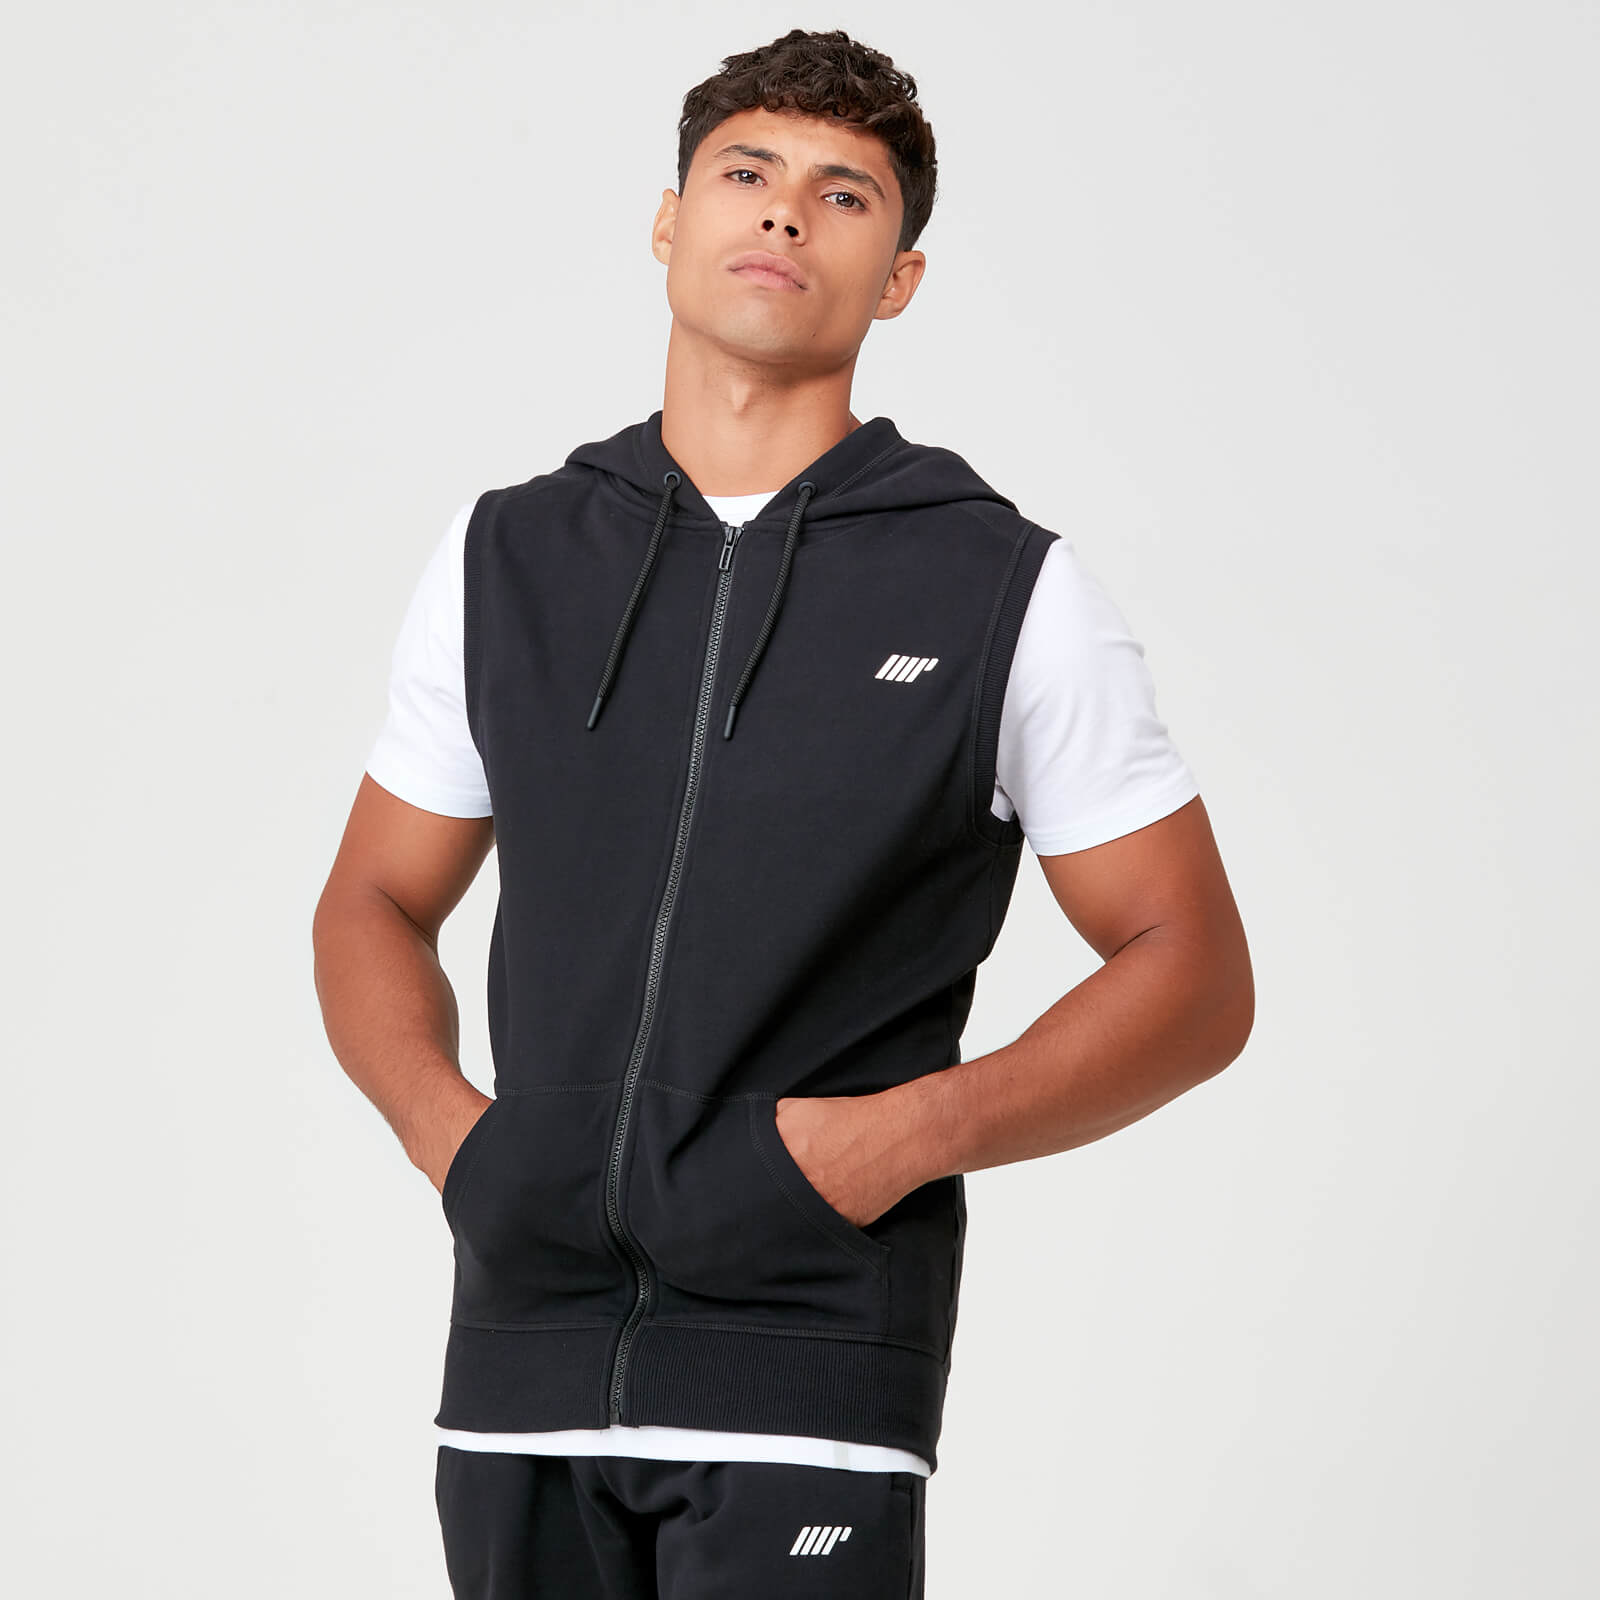 Tru-Fit Sleeveless Hoodie - Black - XS